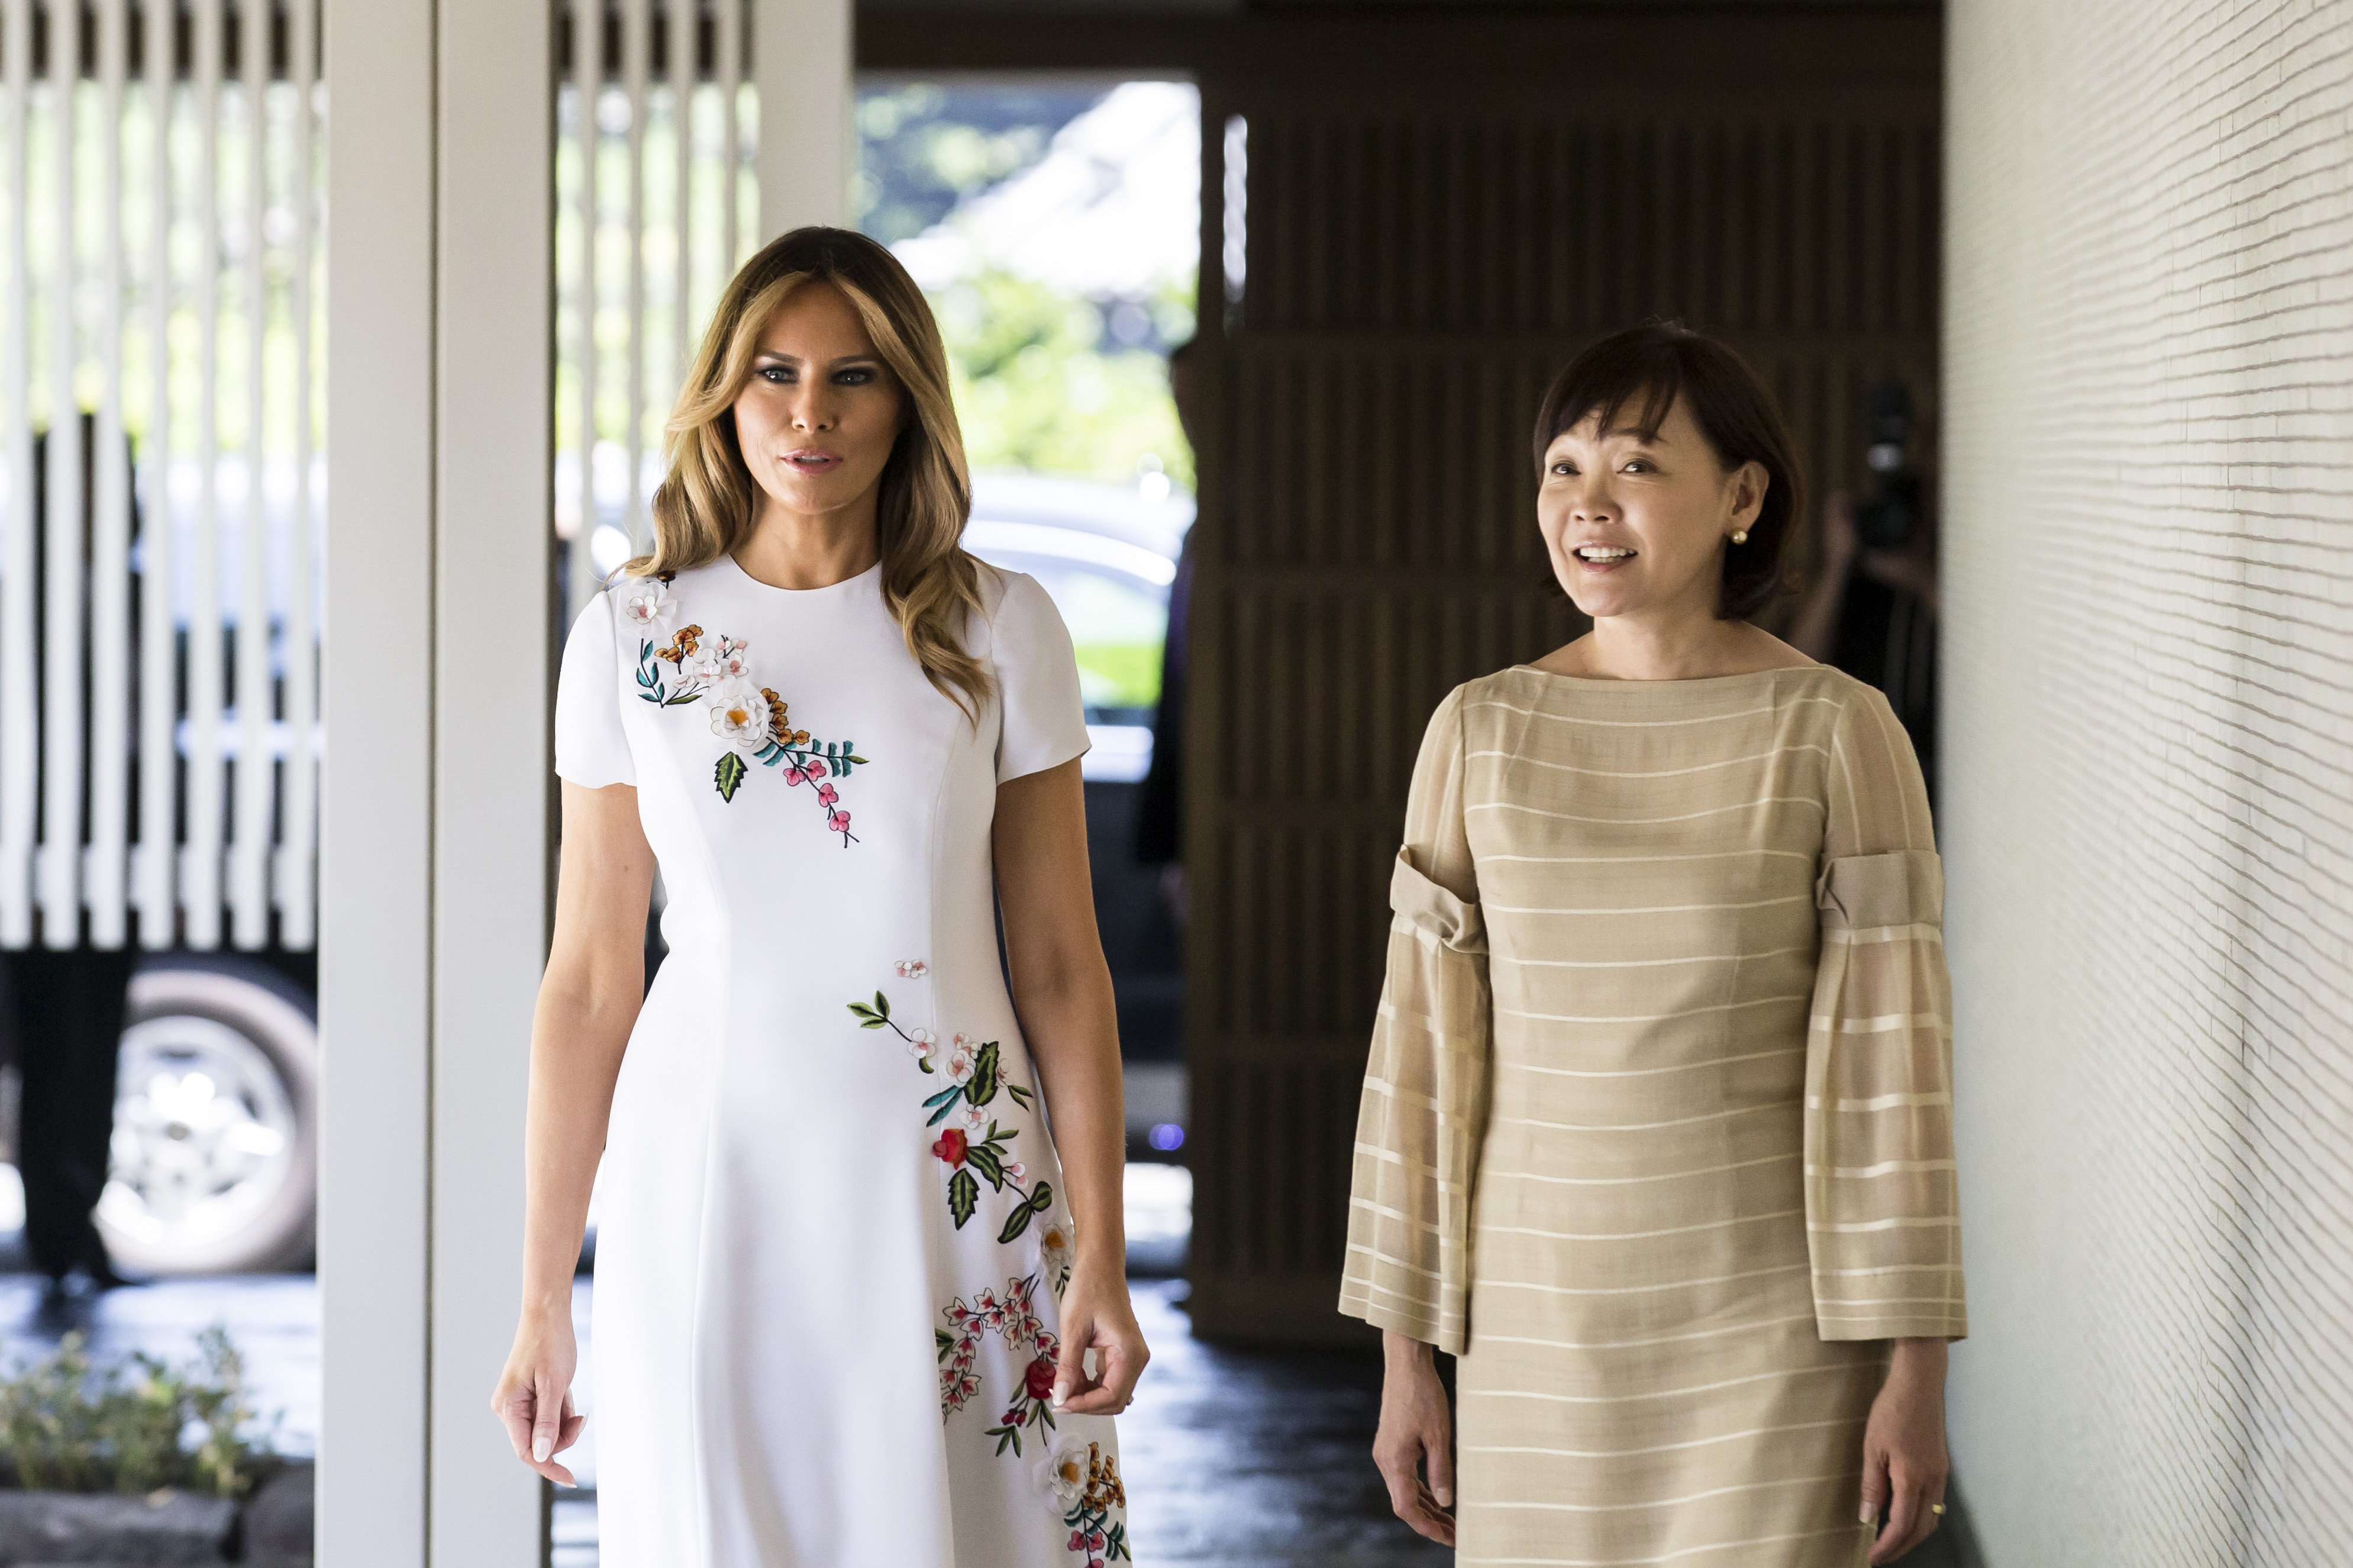 First Lady Melania Trump and Japan's Prime Minister's wife Akie Abe in May 2019 | Photo: Getty Images